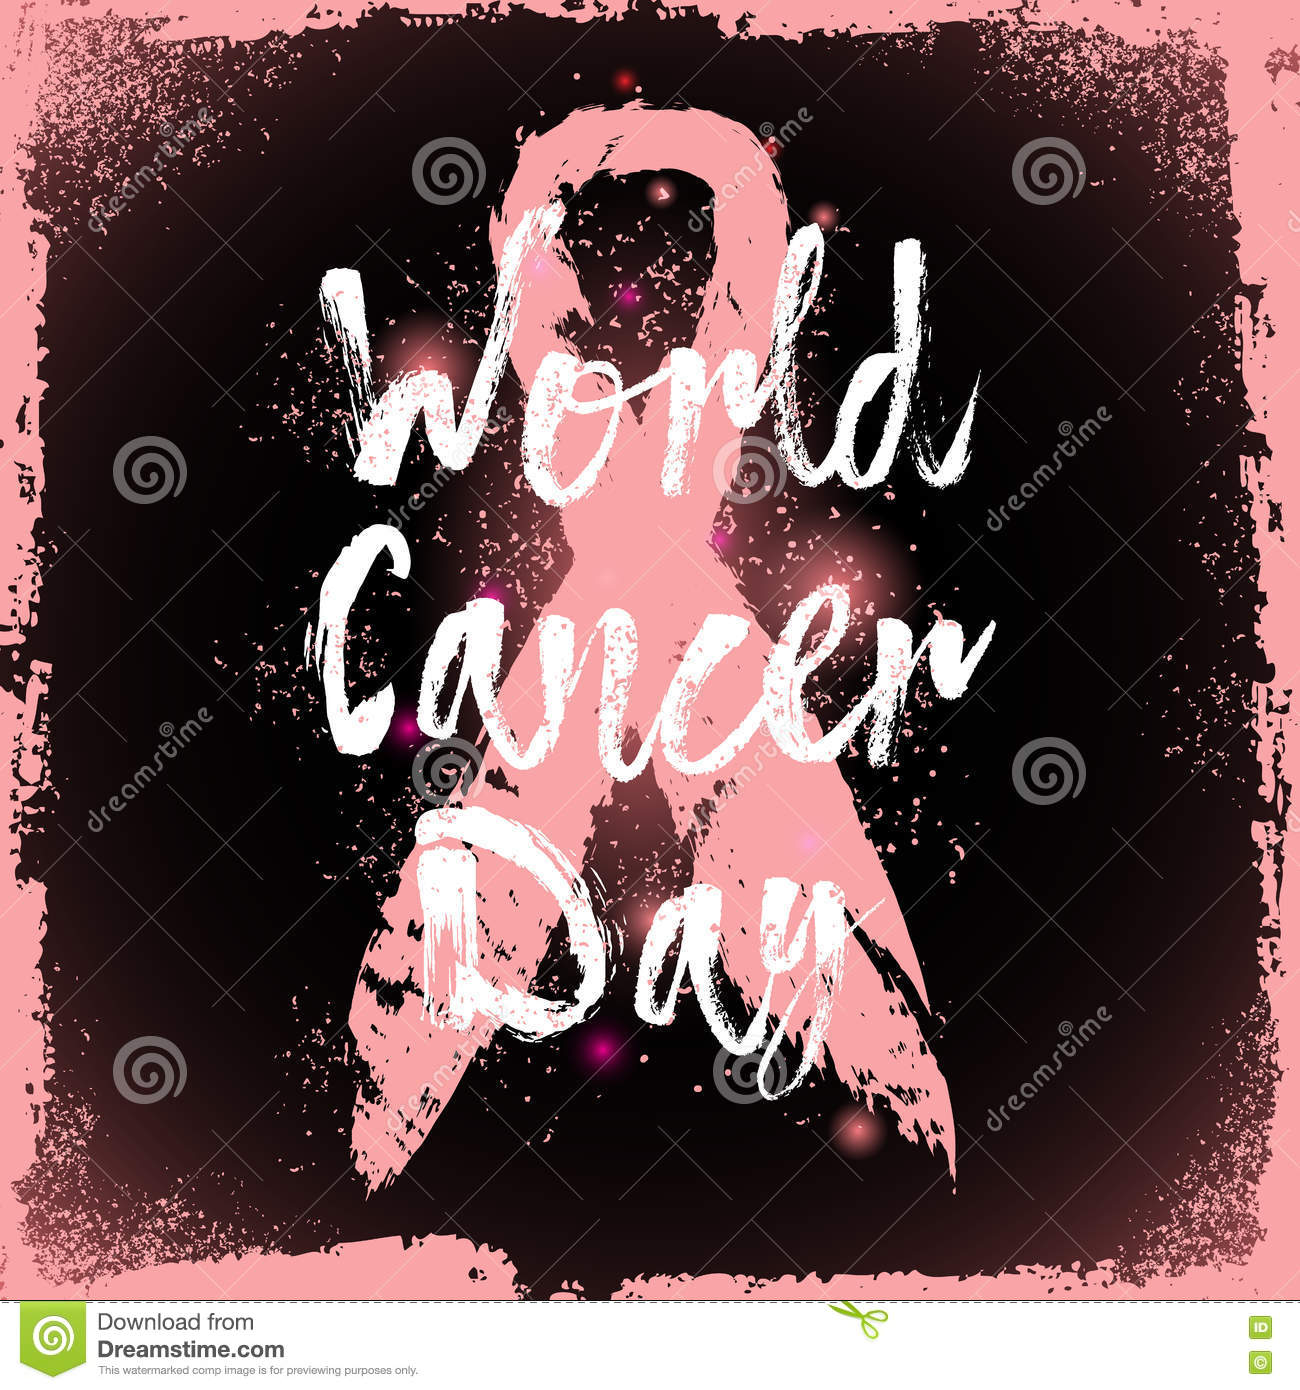 Cancer Sign Quotes World Cancer Daysign Quote About Breast Cancer Awareness Stock